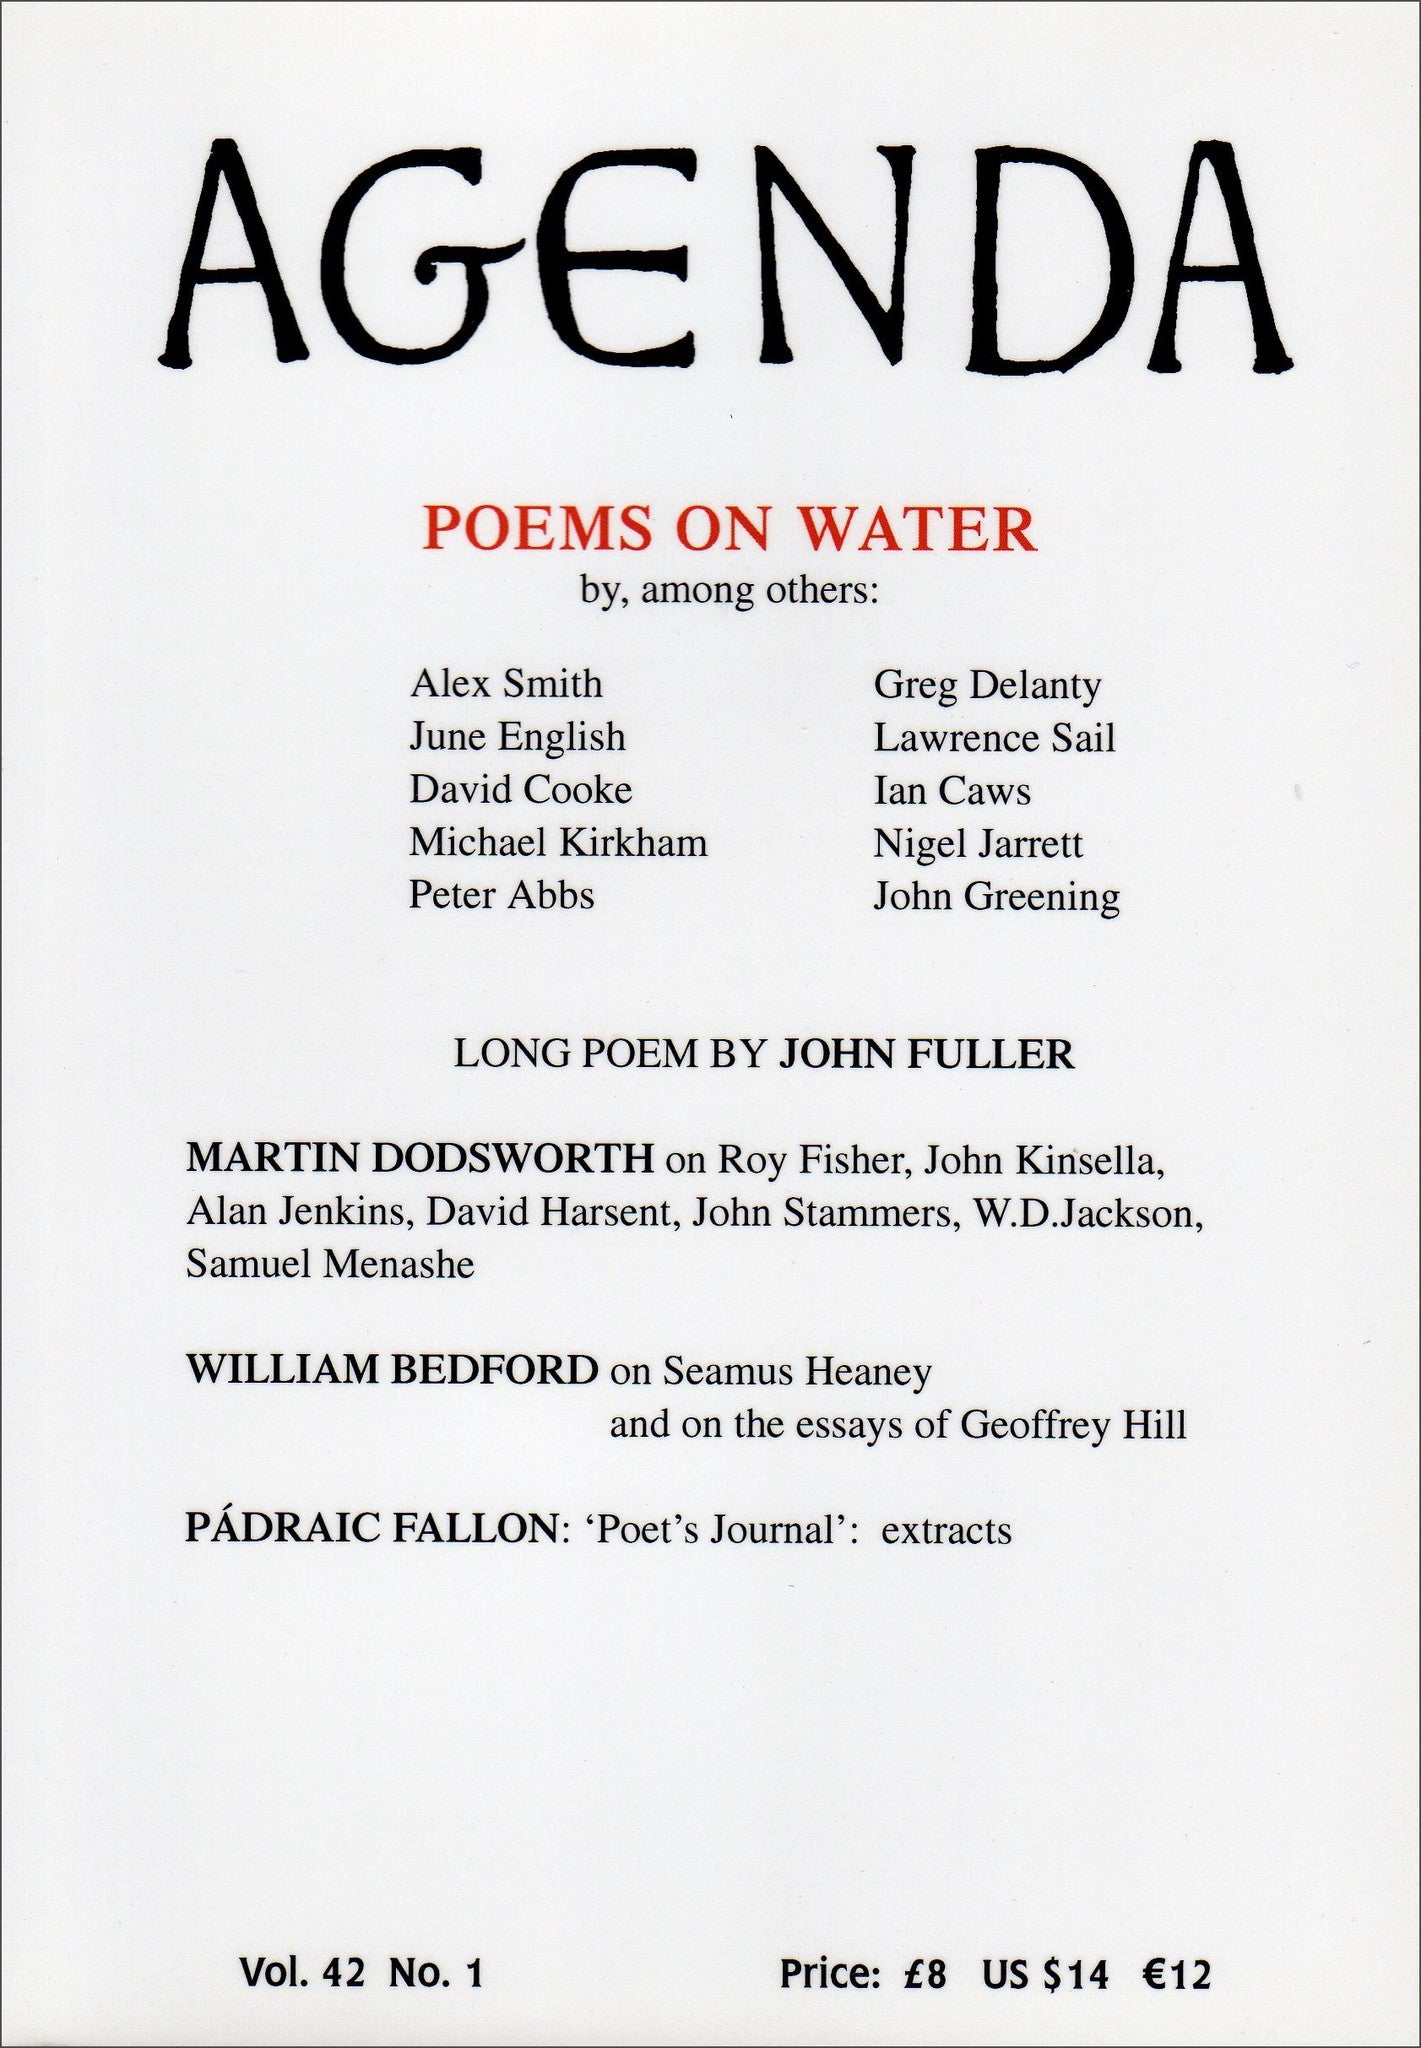 Agenda - Poems on Water